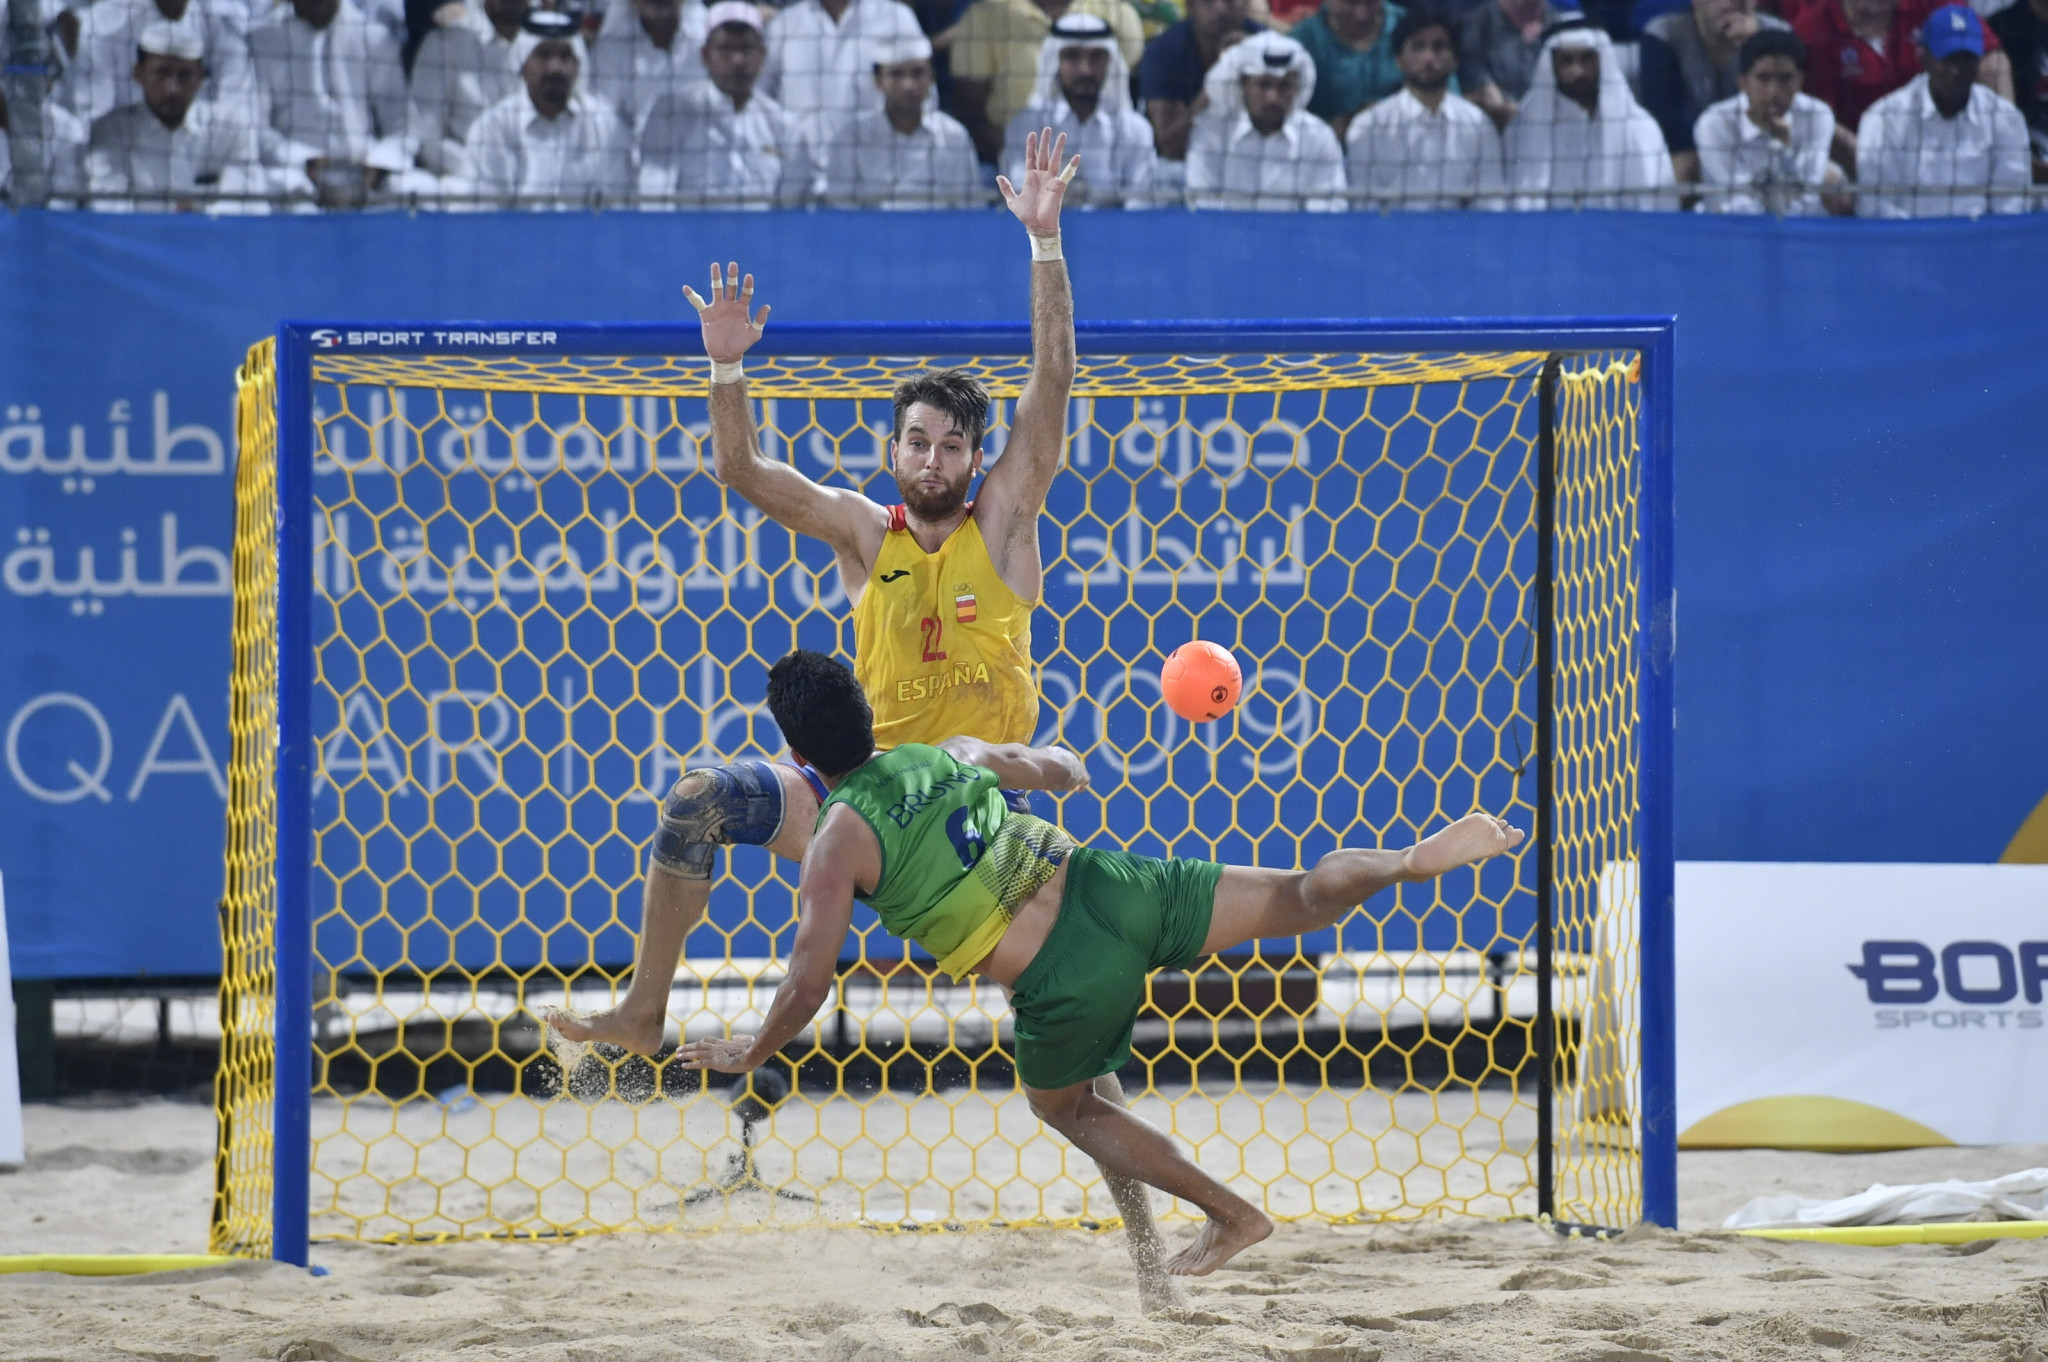 Brazil overcame Spain in a shootout to win the handball at the ANOC World Beach Games ©ANOC World Beach Games